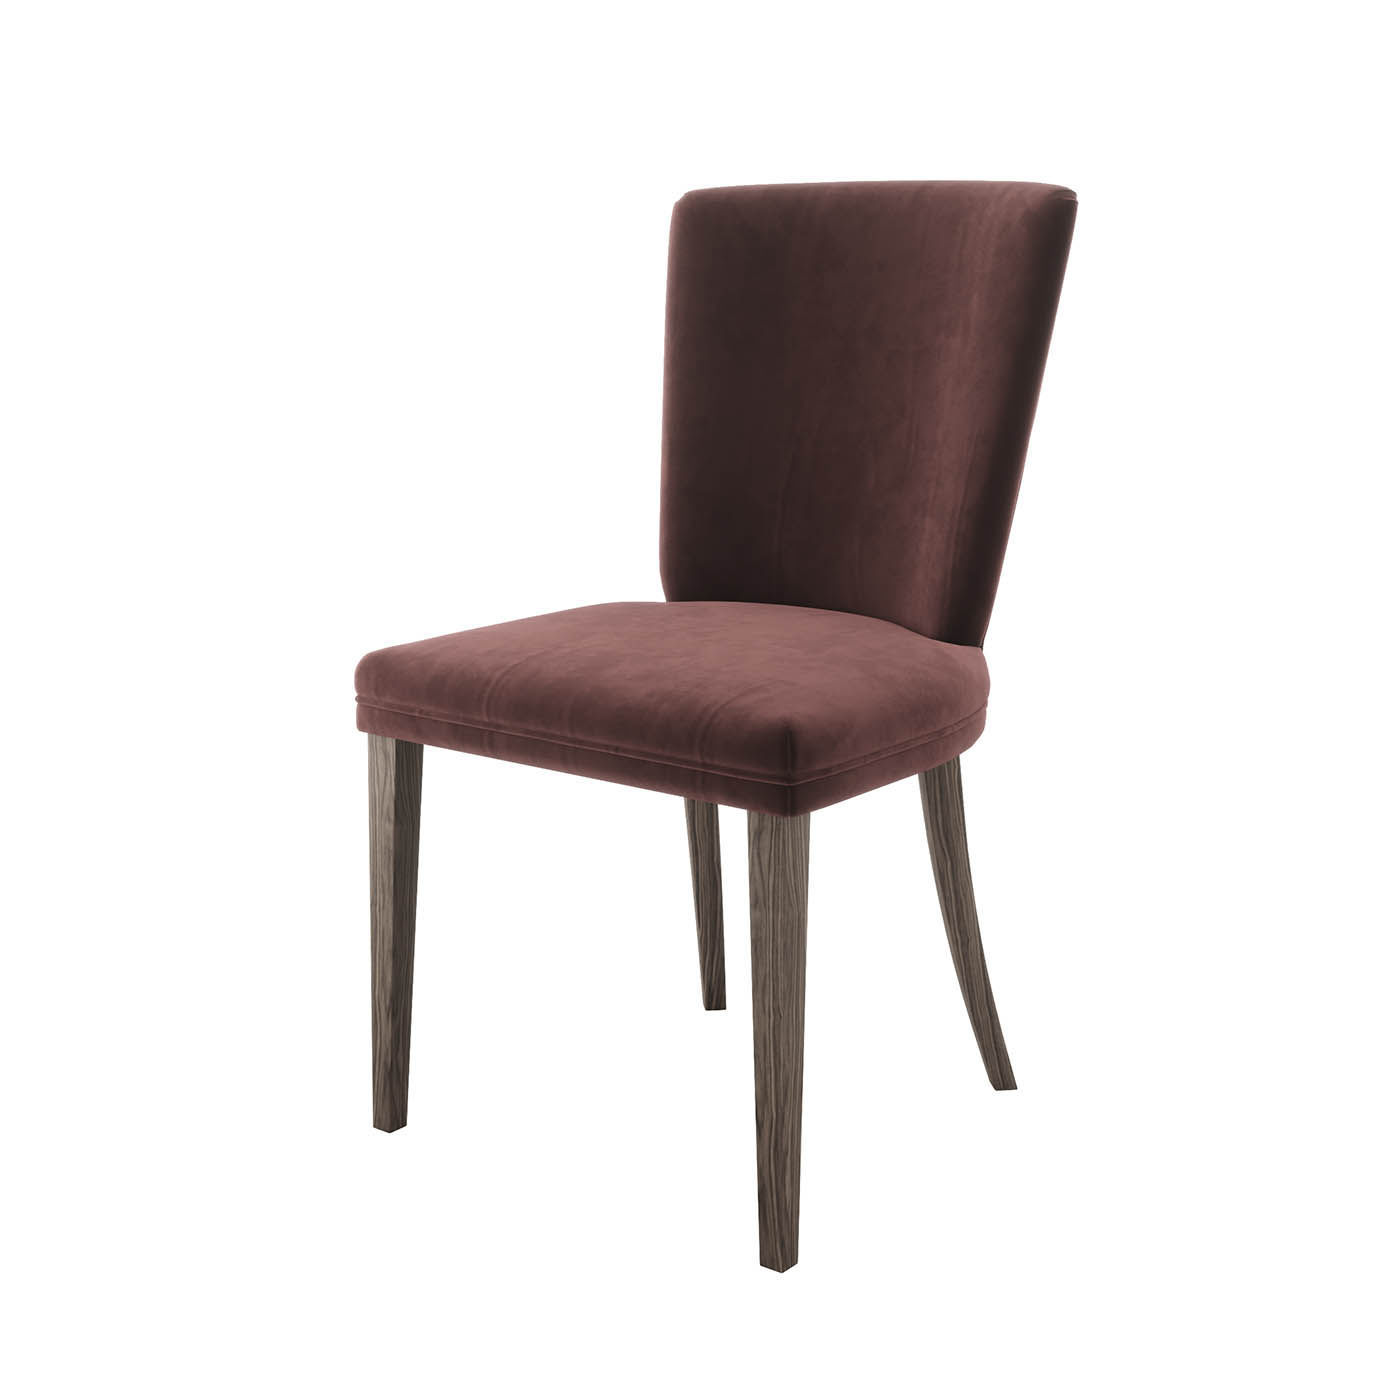 Miraculous Traditional Dining Chair Upholstered Custom Eco Gmtry Best Dining Table And Chair Ideas Images Gmtryco